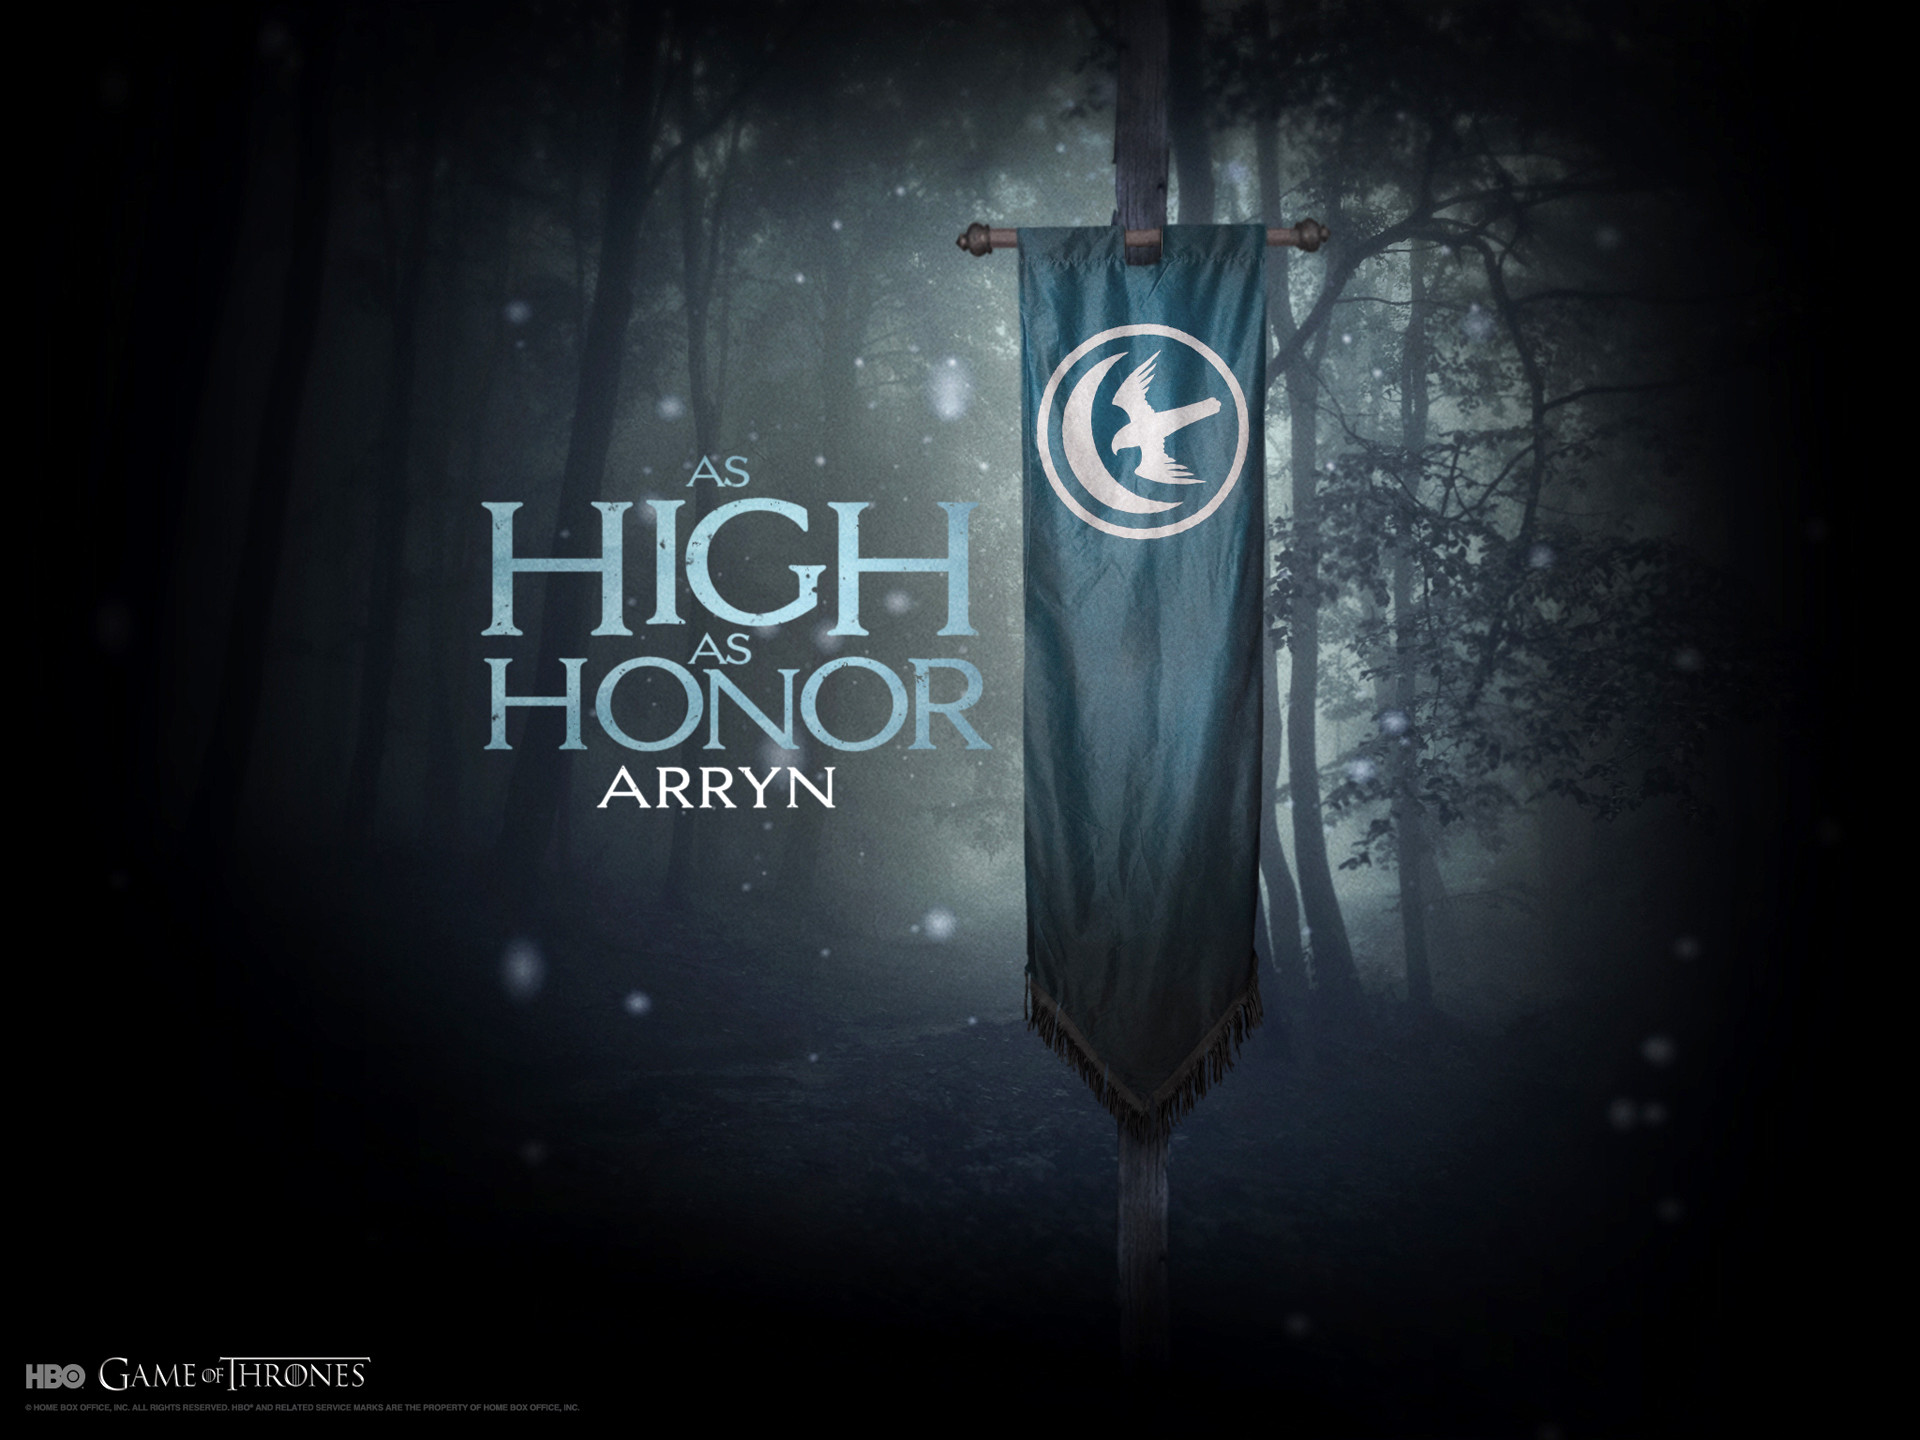 A Song of Ice and Fire Game of Thrones House Arryn TV series banner  wallpaper ( / Wallbase.